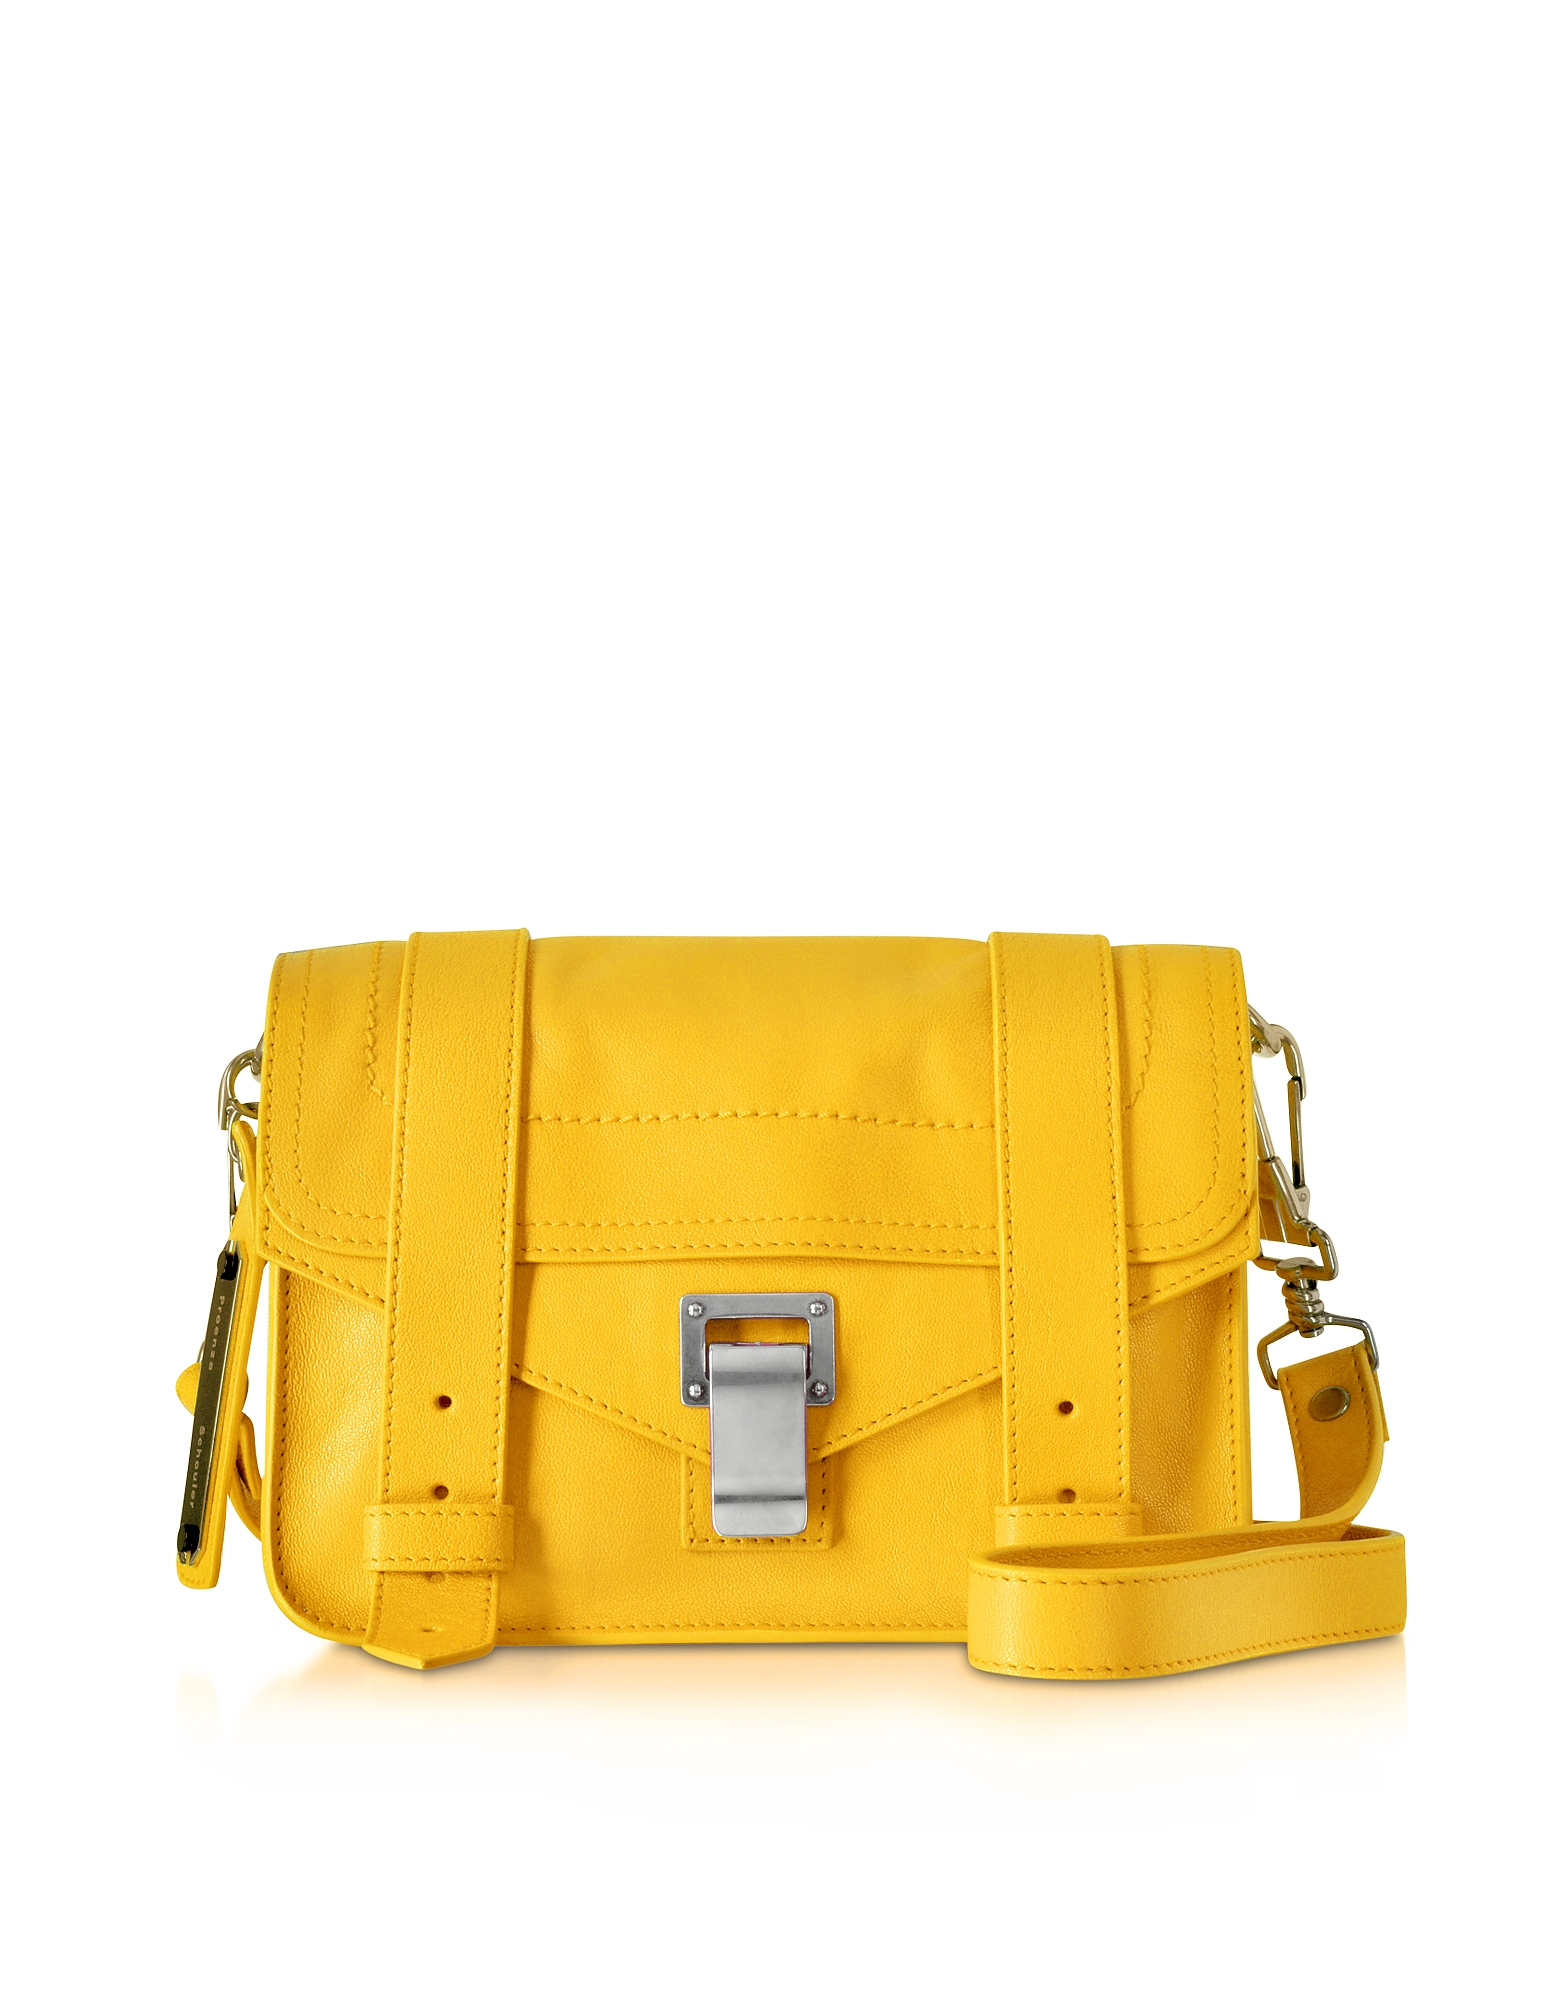 Proenza Schouler Handbags, Lux Leather Ps1 Mini Crossbody